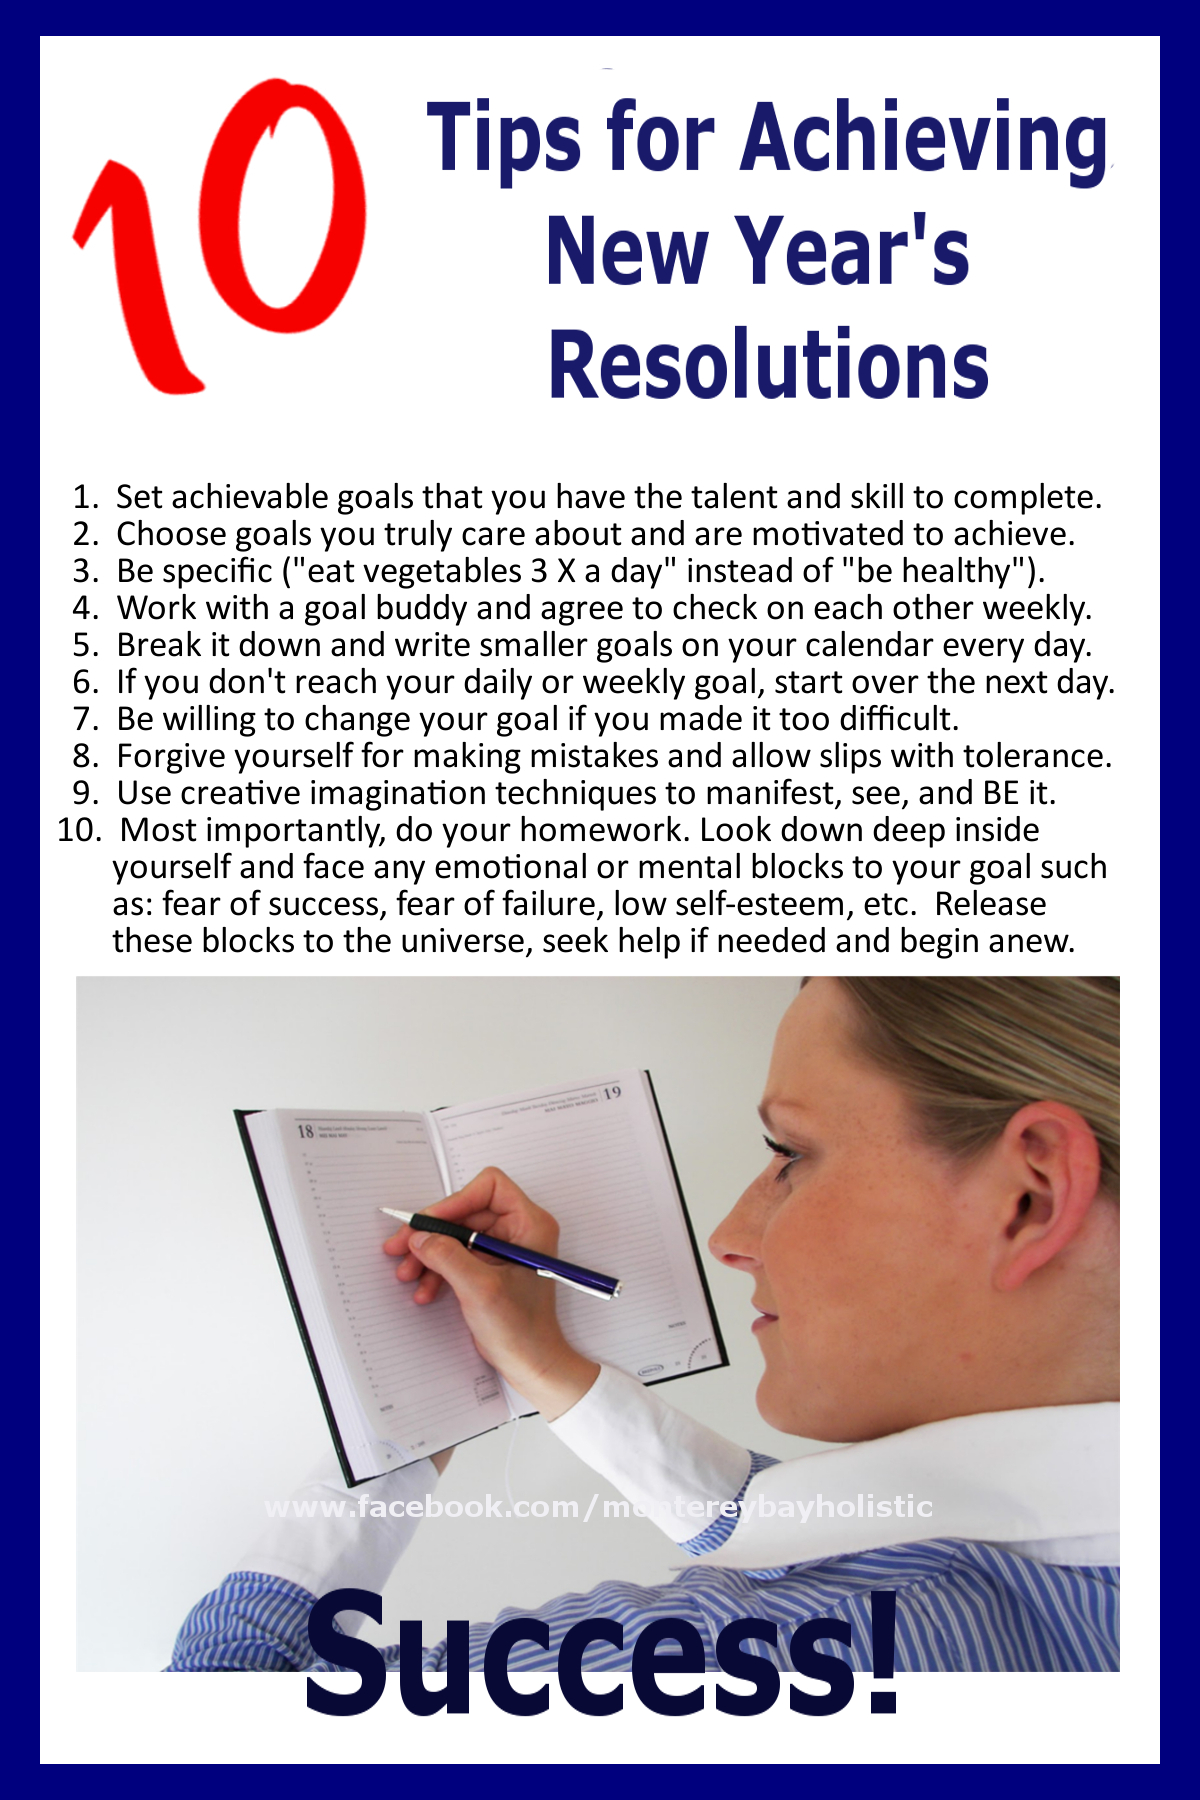 10 Reasons Why New Year's Resolutions Fail recommend